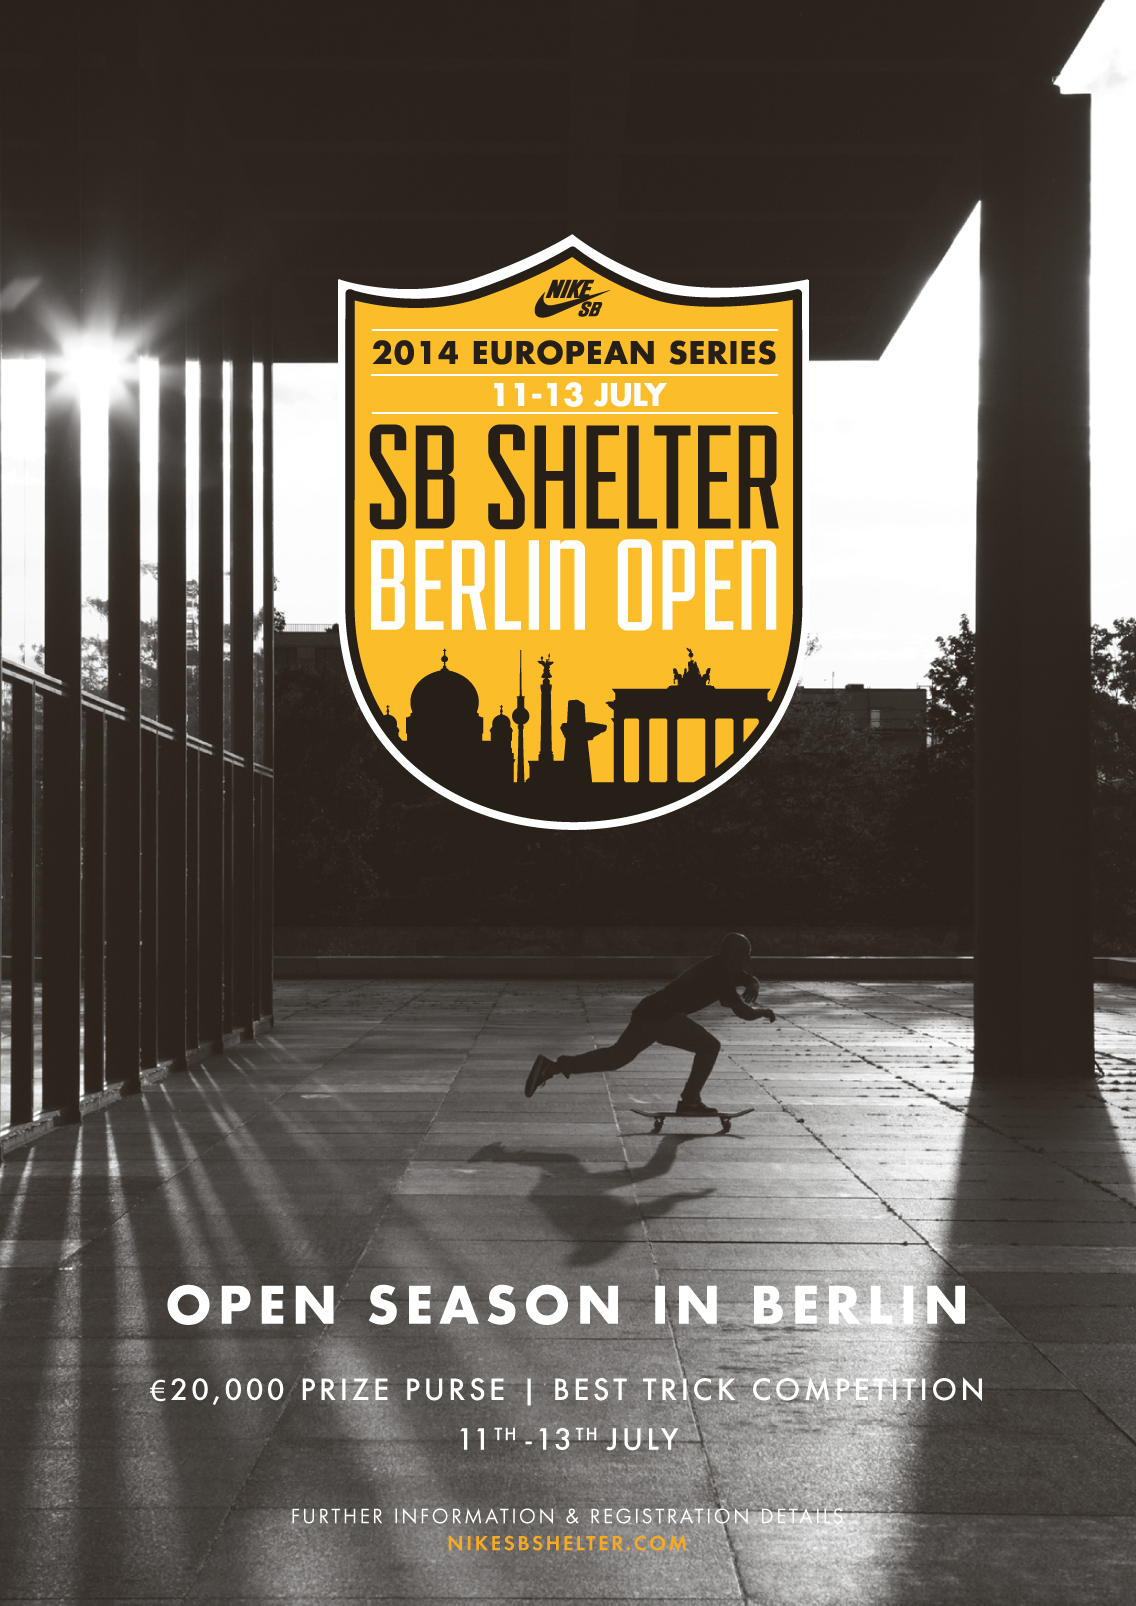 NikeSB_BerlinOpen-DigitalFlyer